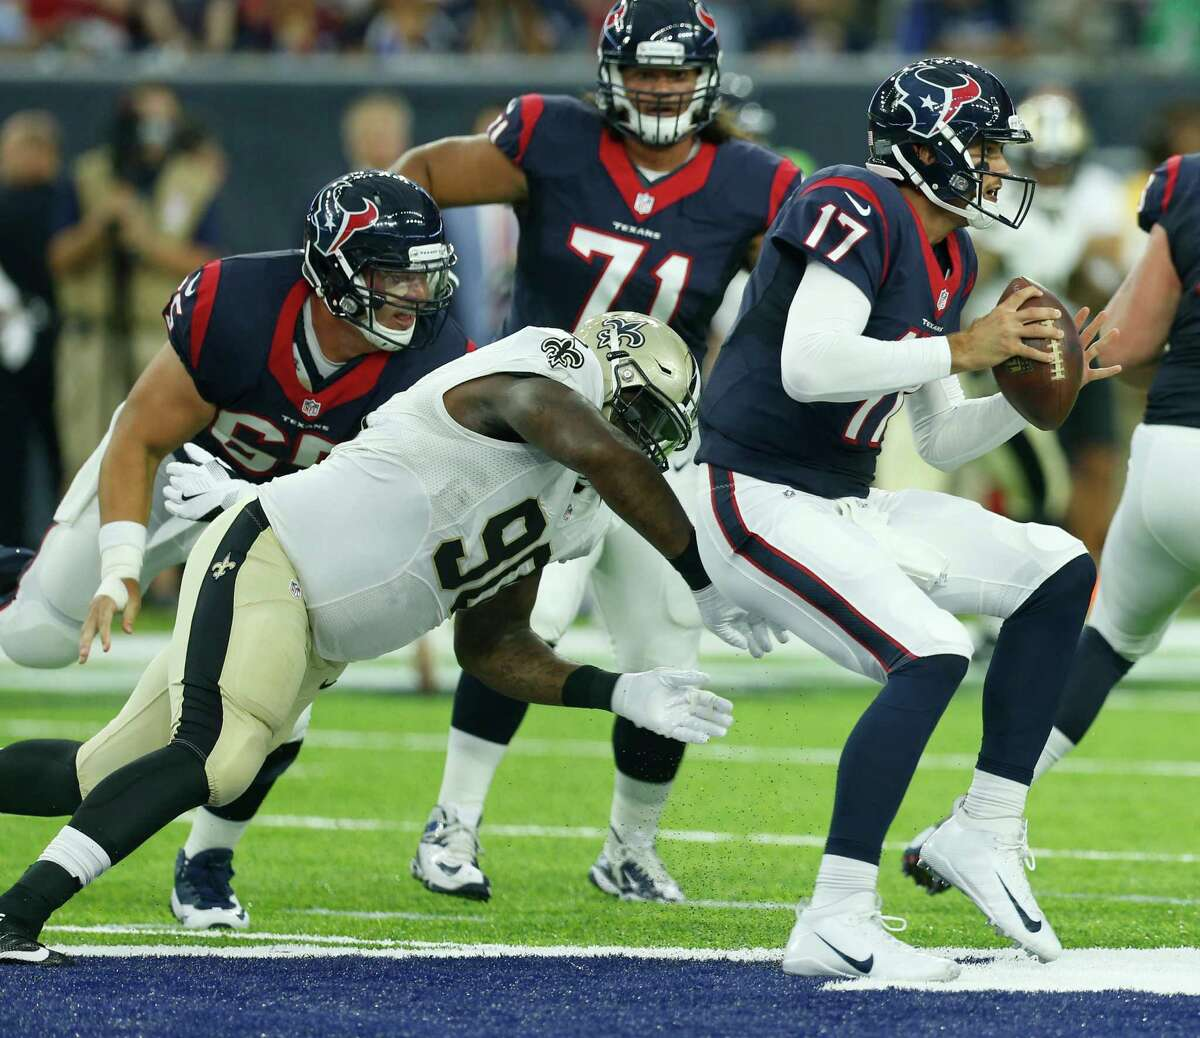 New Orleans defensive tackle Nick Fairley (90) beats Texans center Greg Mancz, left, and sacks Brock Osweiler in the first half Saturday. Mancz was thrust into his starting role when Nick Martin missed the game because of an ankle injury.